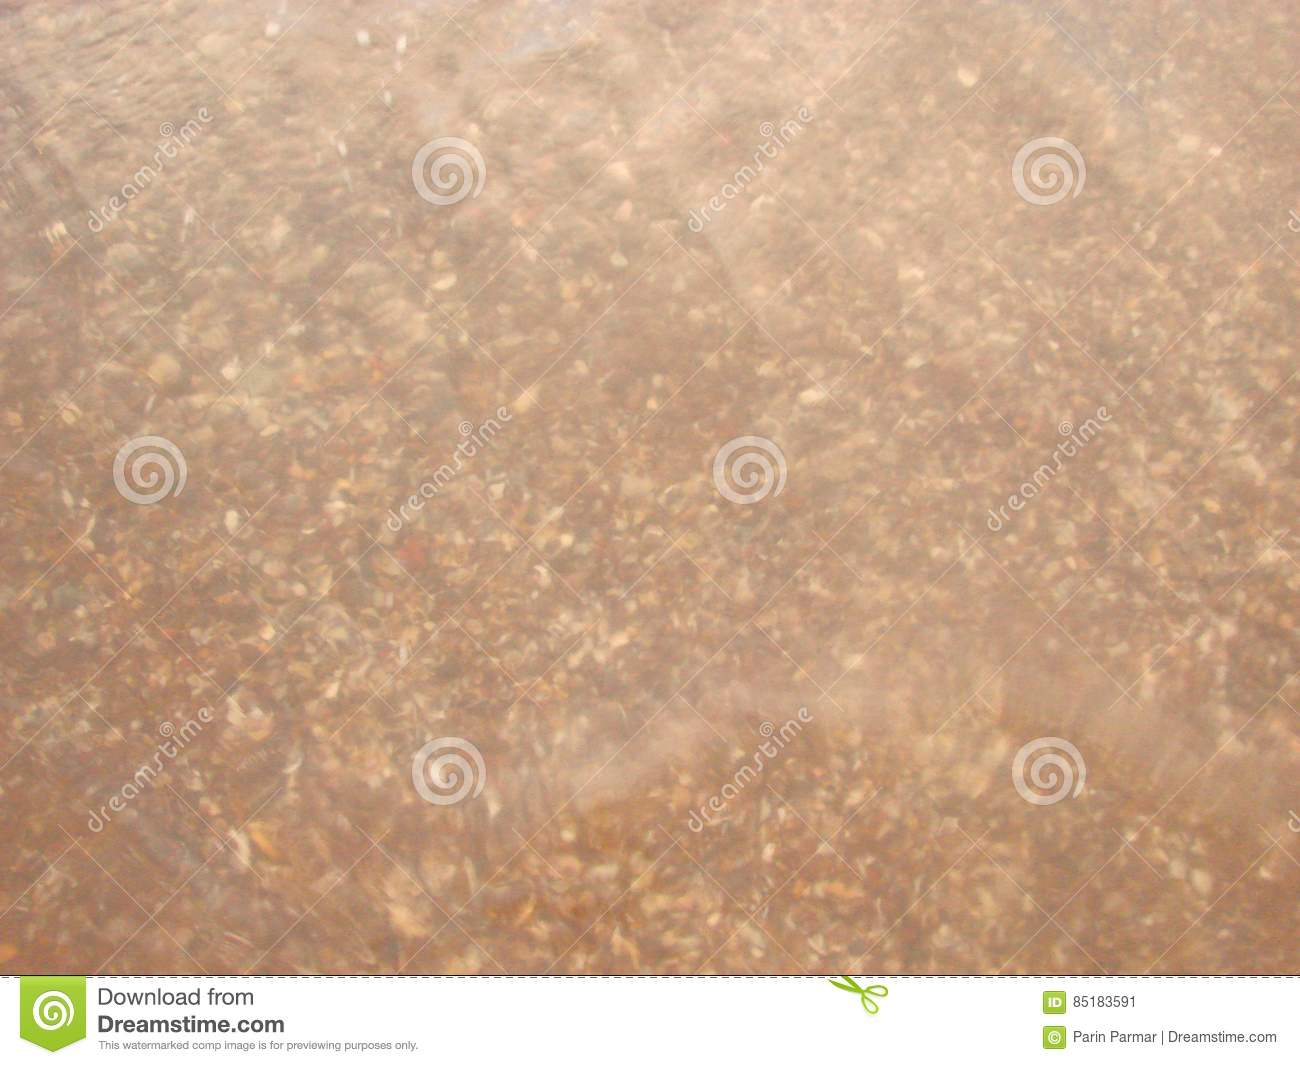 Underwater Shell and Sand - Abstract Background